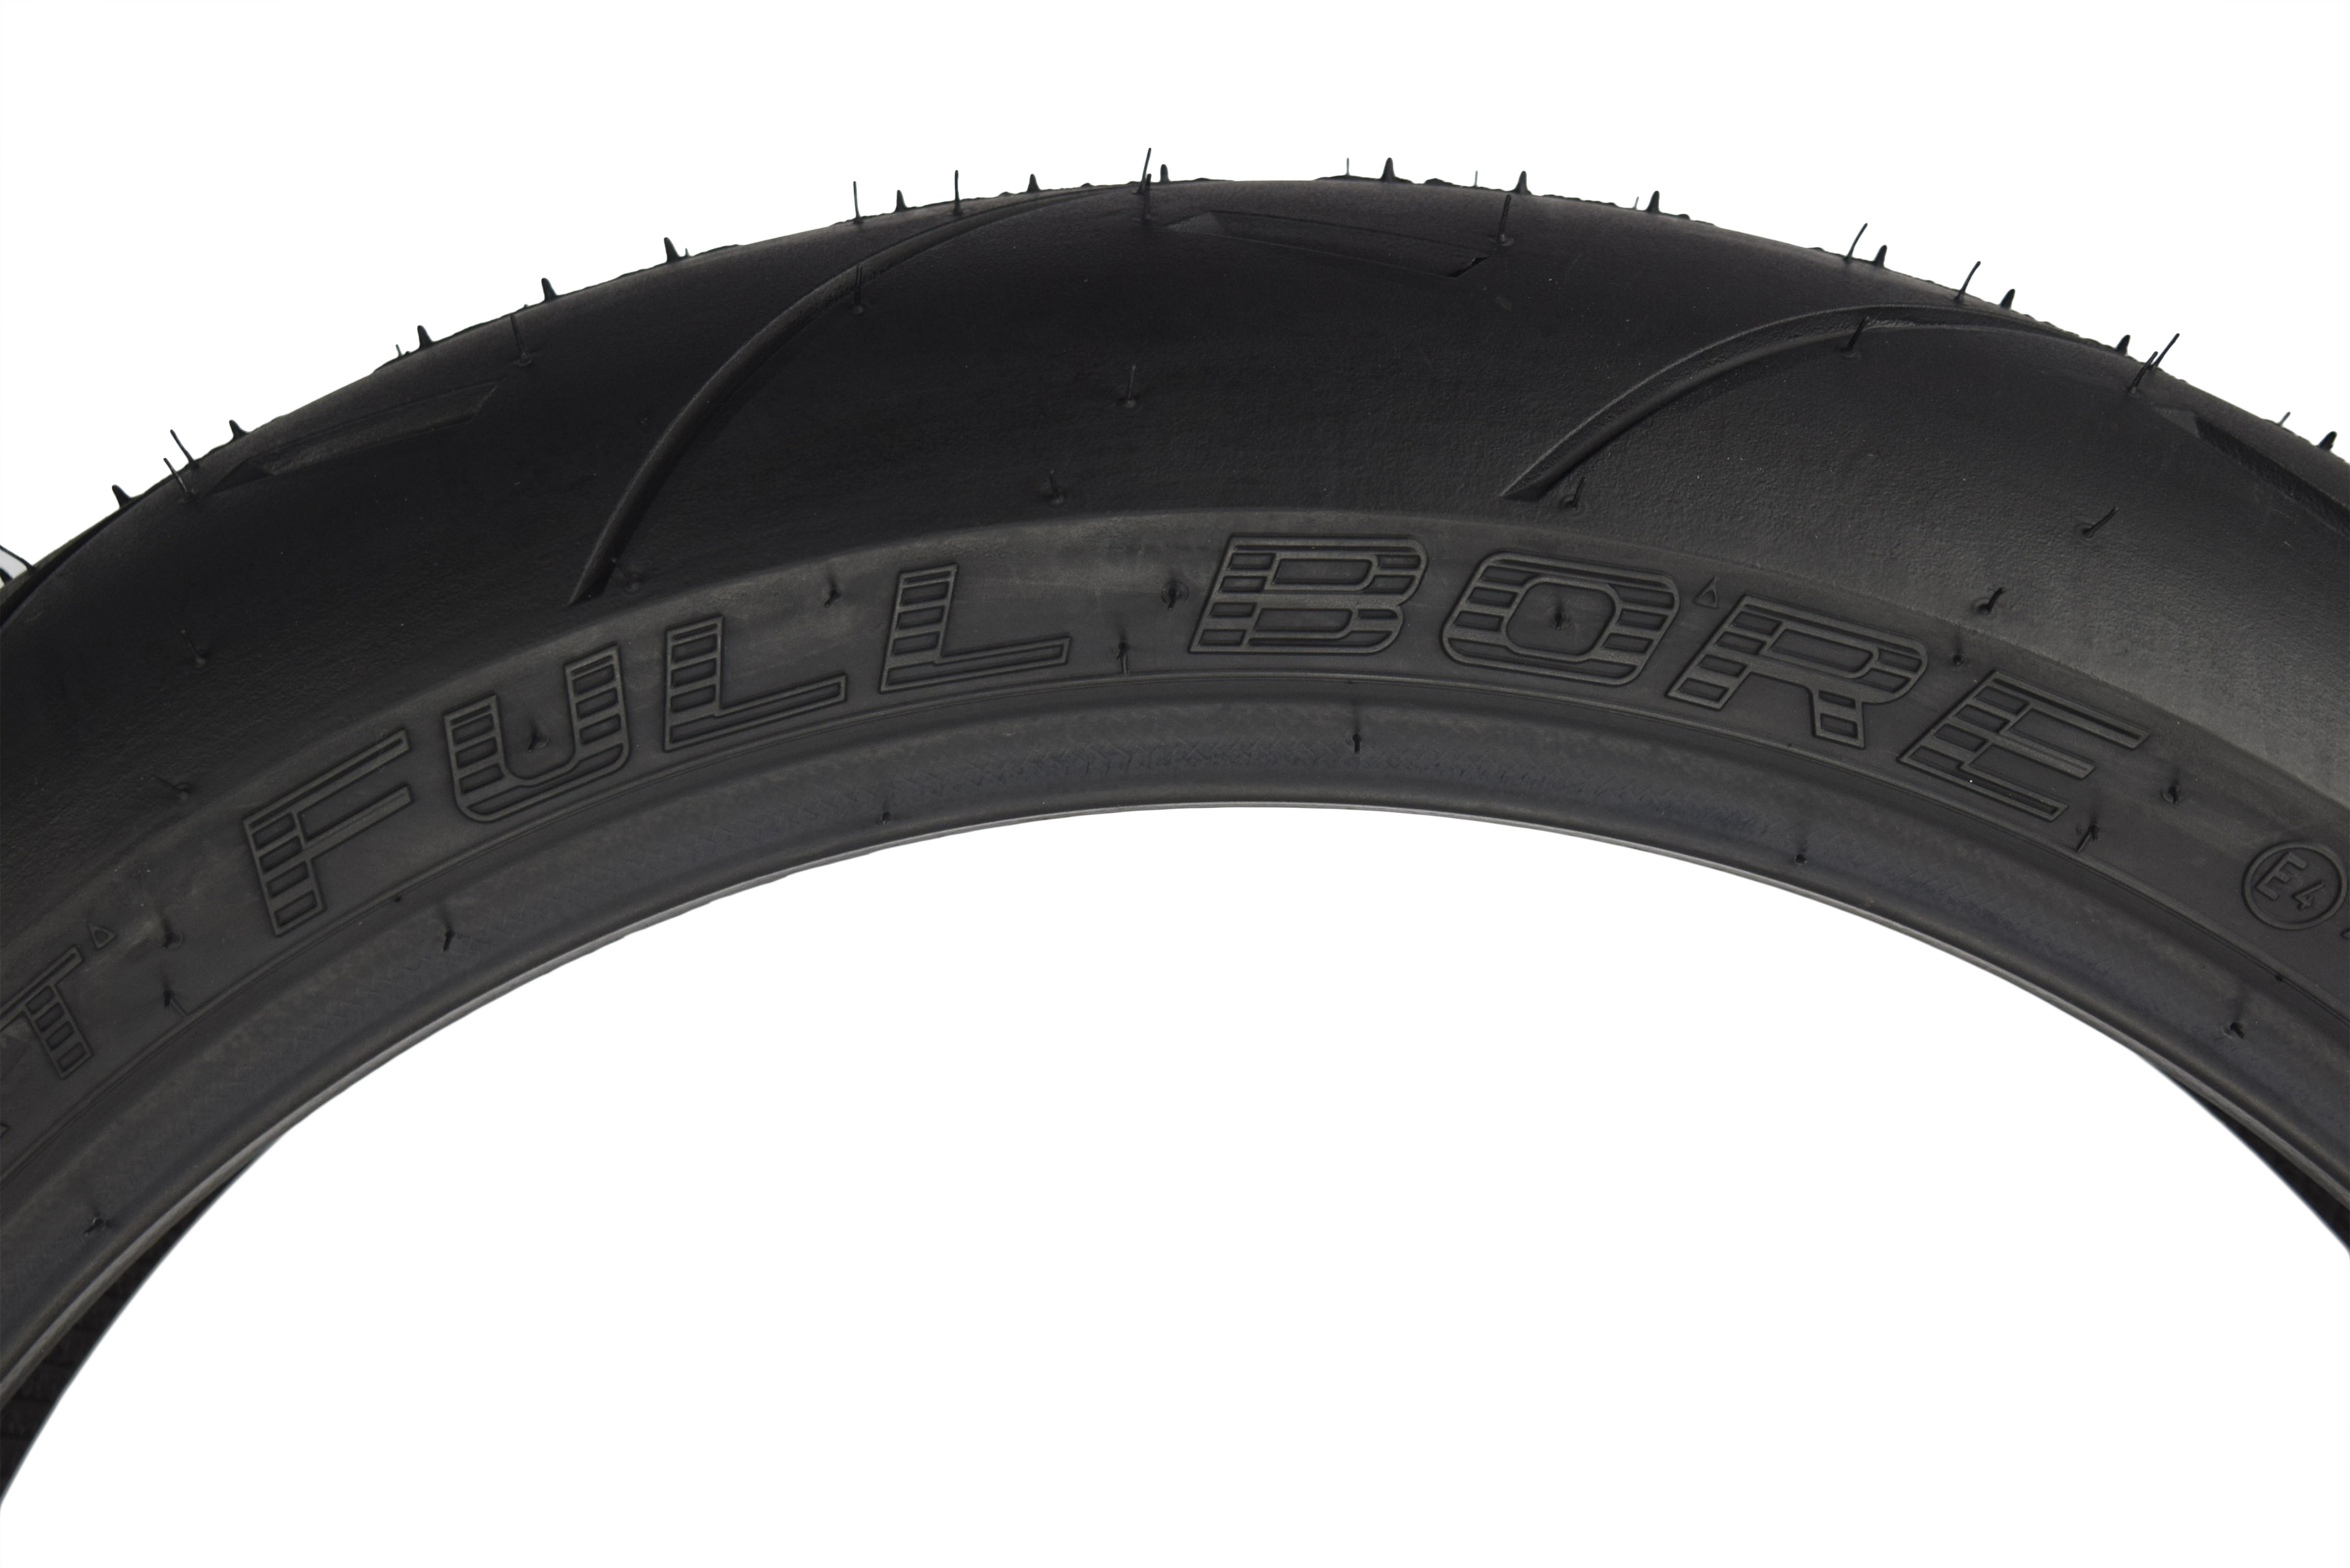 Full-Bore-120-70-17-F-190-50-17-R-Radial-Sportbike-Motorcycle-Tires-image-4